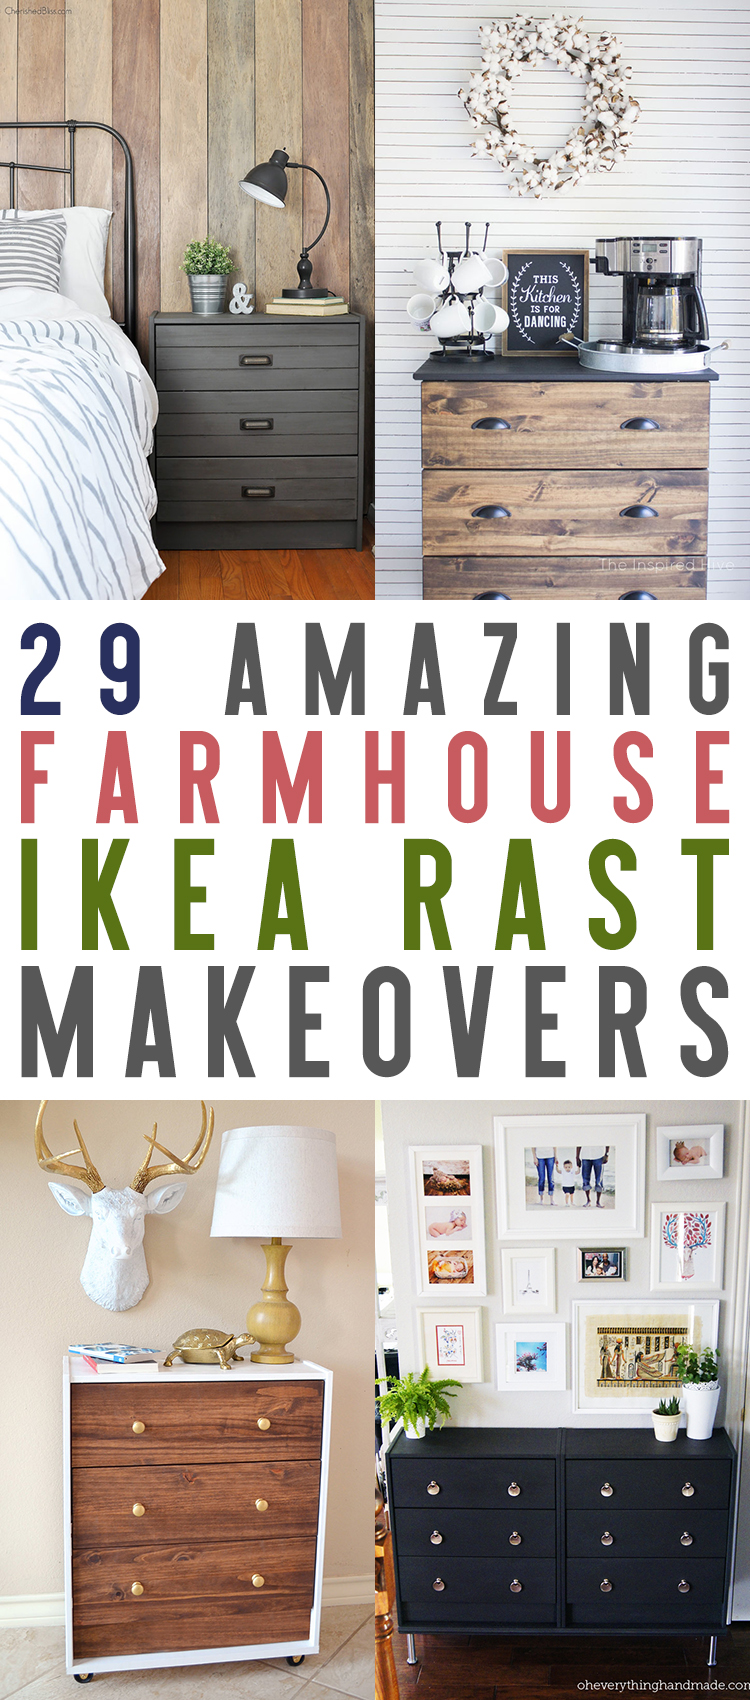 Use these Ikea rast makeovers as inspiration in your own home.